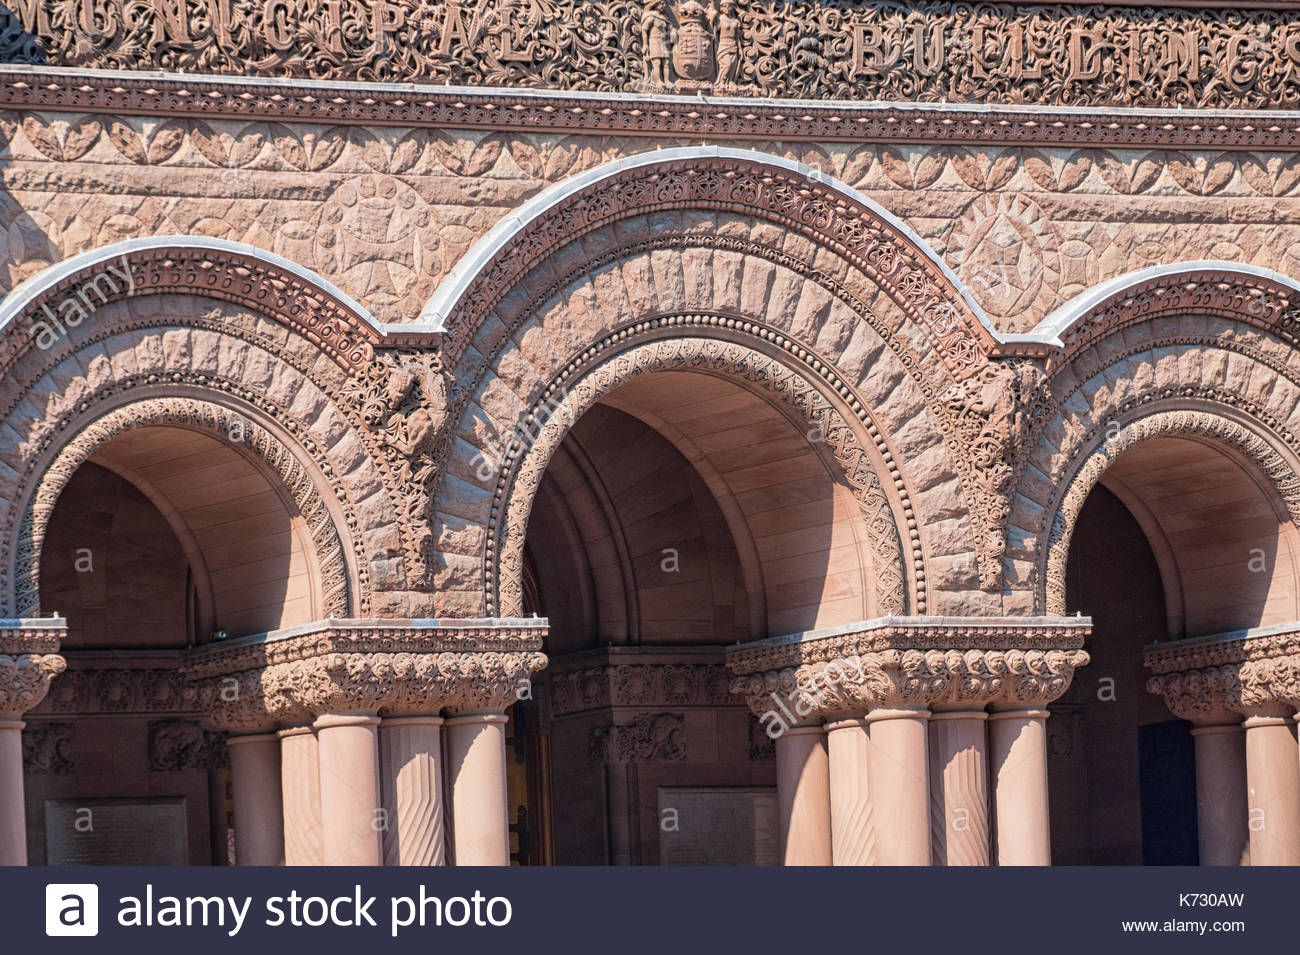 Old City Hall Richardsonian Romanesque Revival architectural details. Arches in the facade.The red stone old building is a tourist attraction in the C - Stock Image